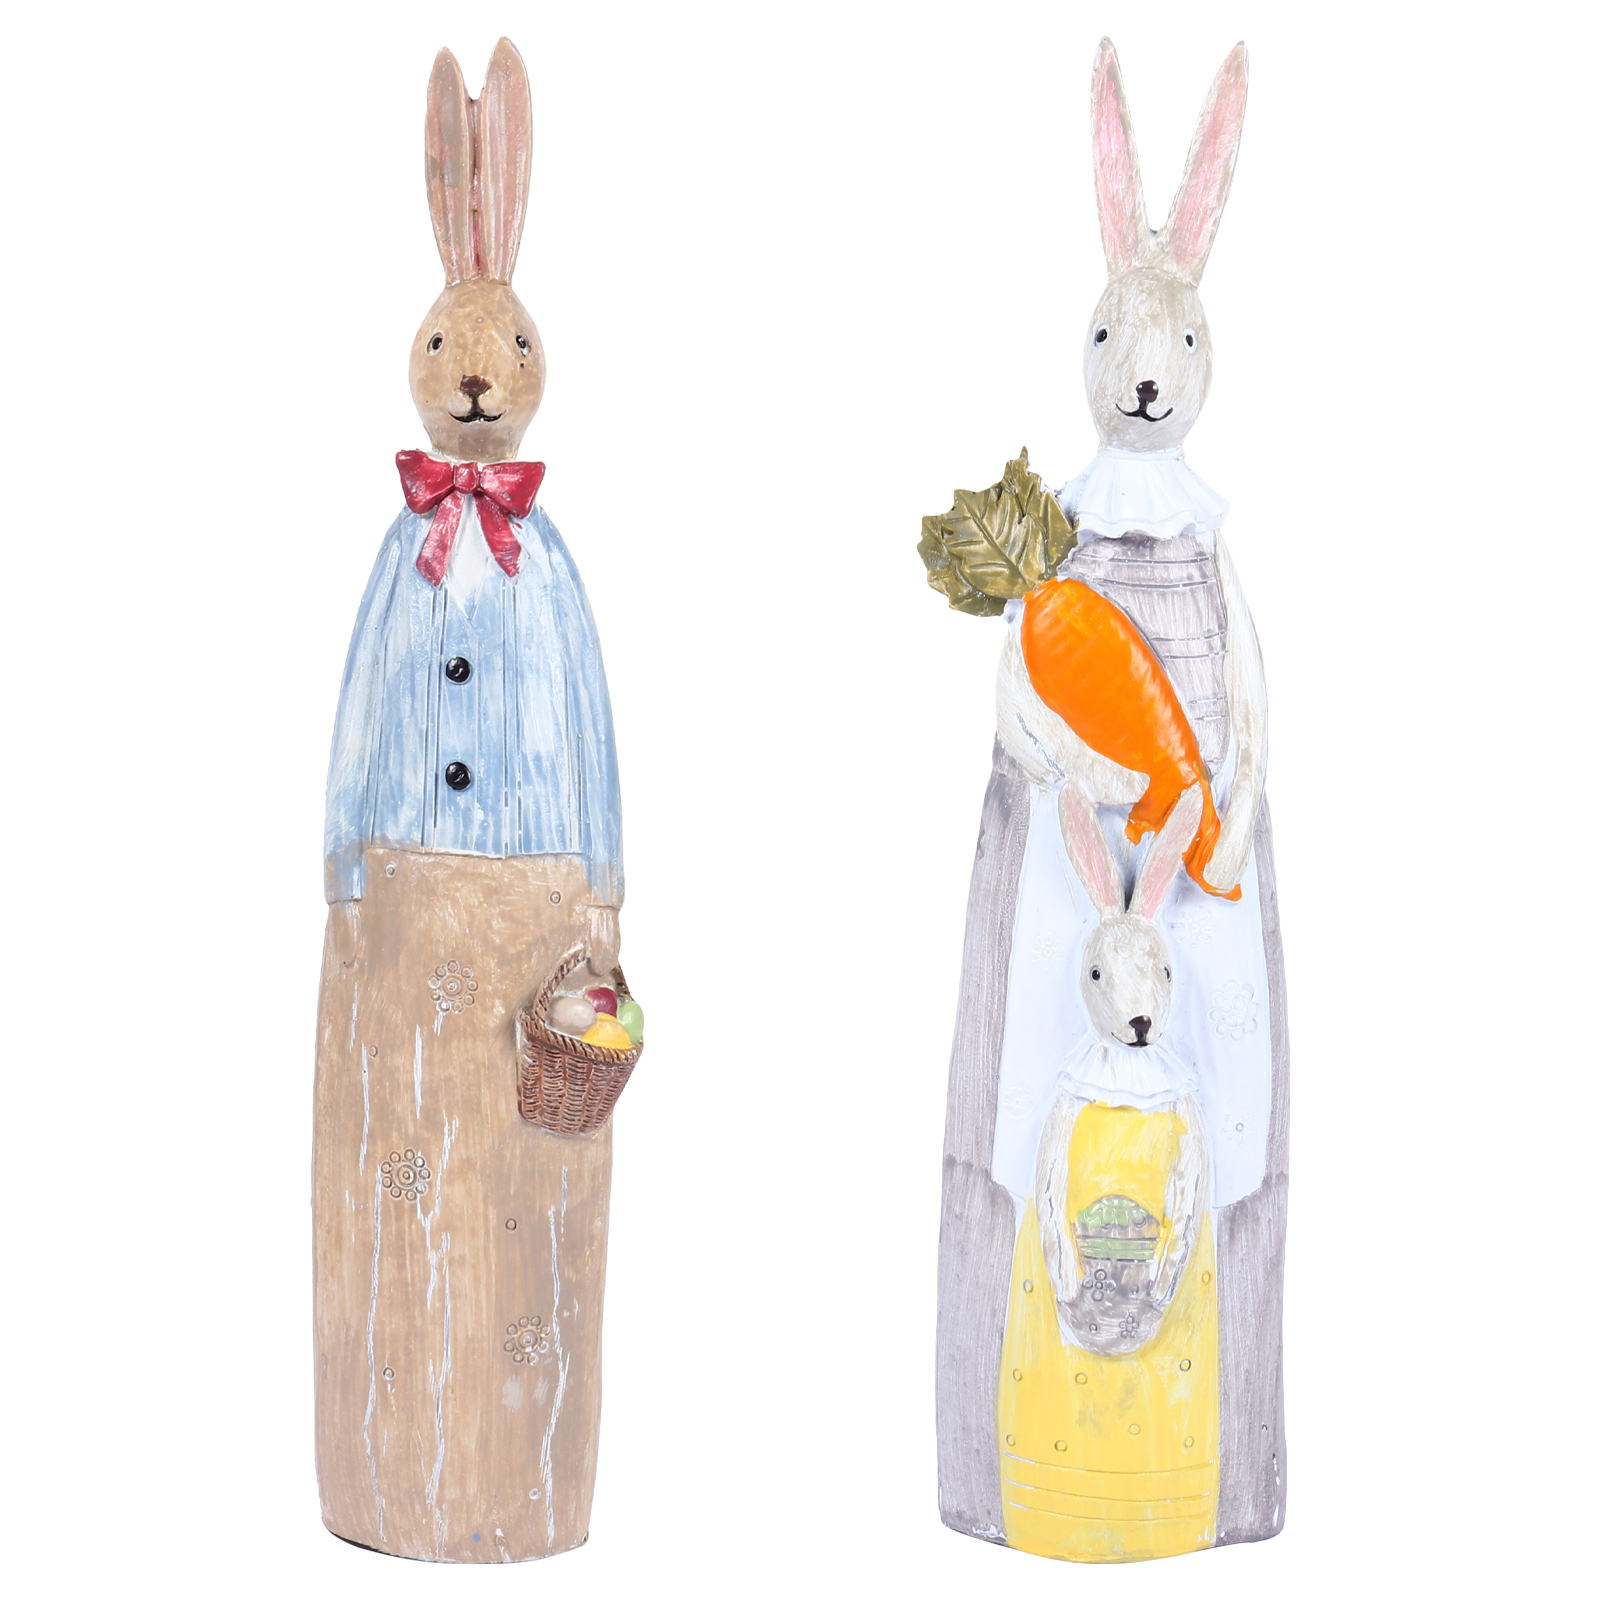 Confident 1 Pair Painted Home Decor Home Decoration Accessories Resin Rabbits Painted Couple Bunny Figurines For Festival Decoration Sale Overall Discount 50-70%